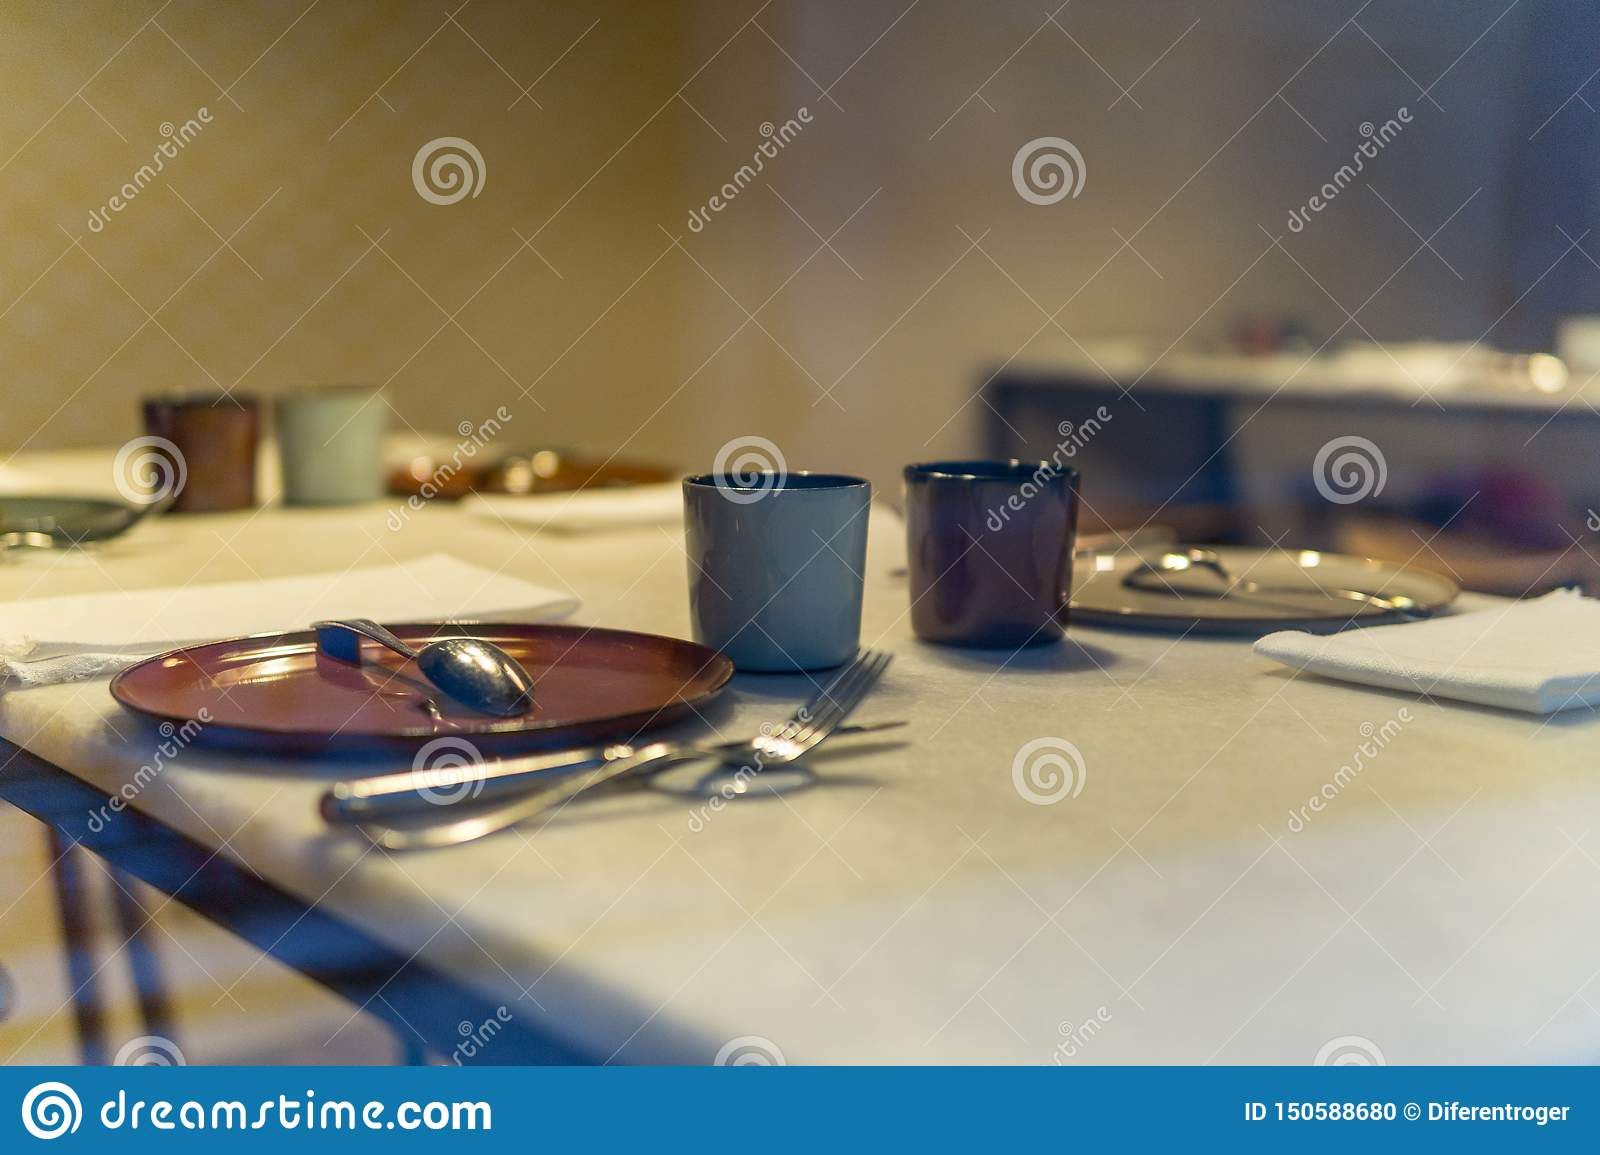 Prepared table without people to eat with warm background in restaurant